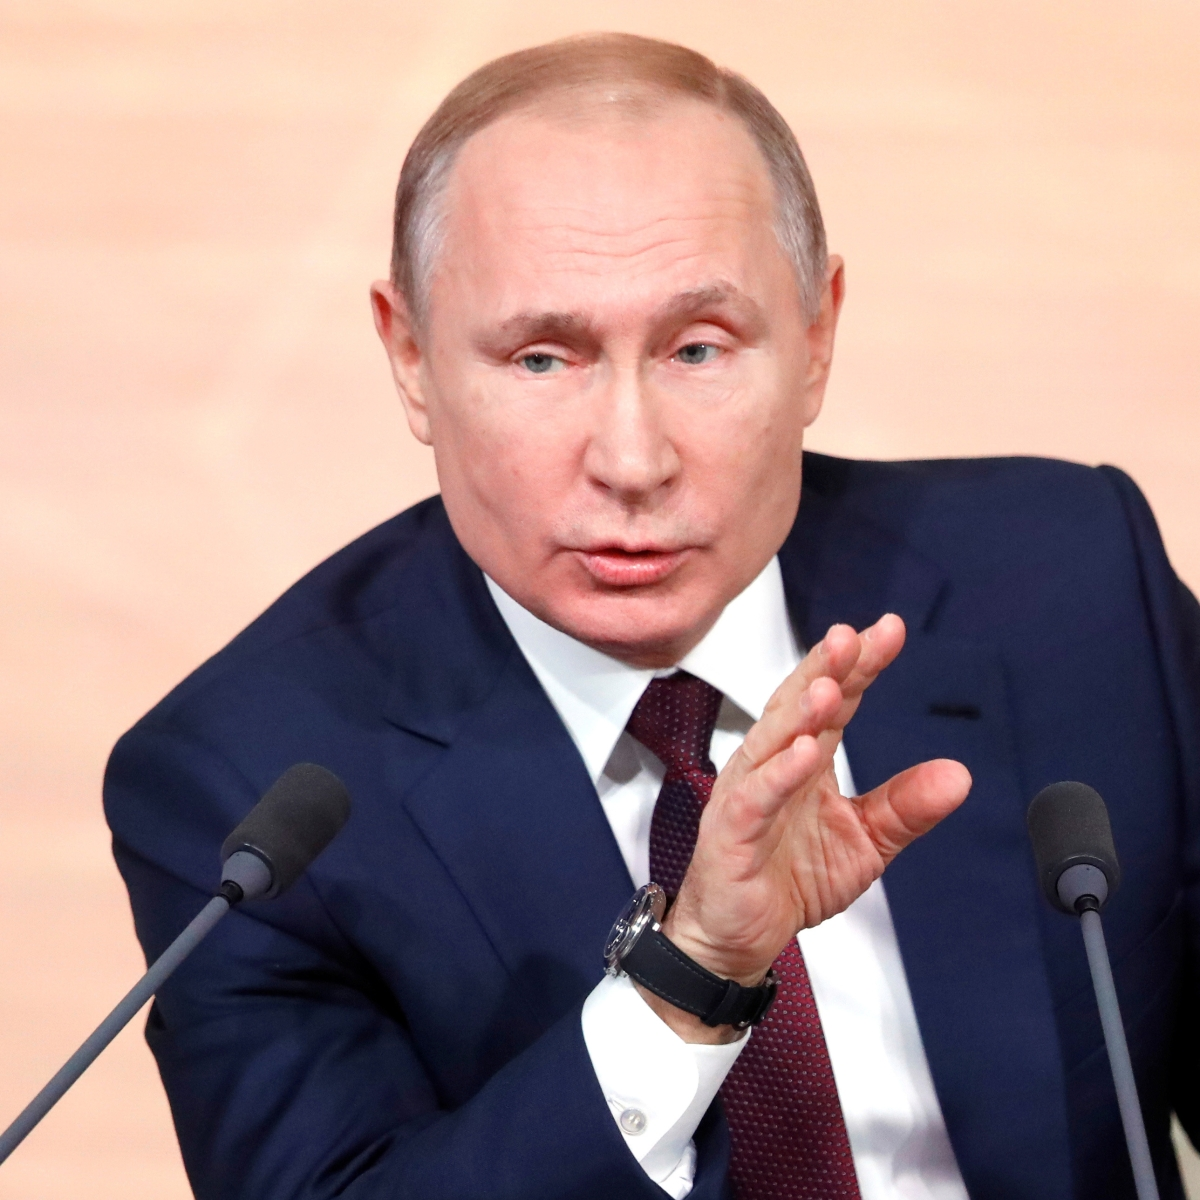 The case was all made up, says Vladimir Putin